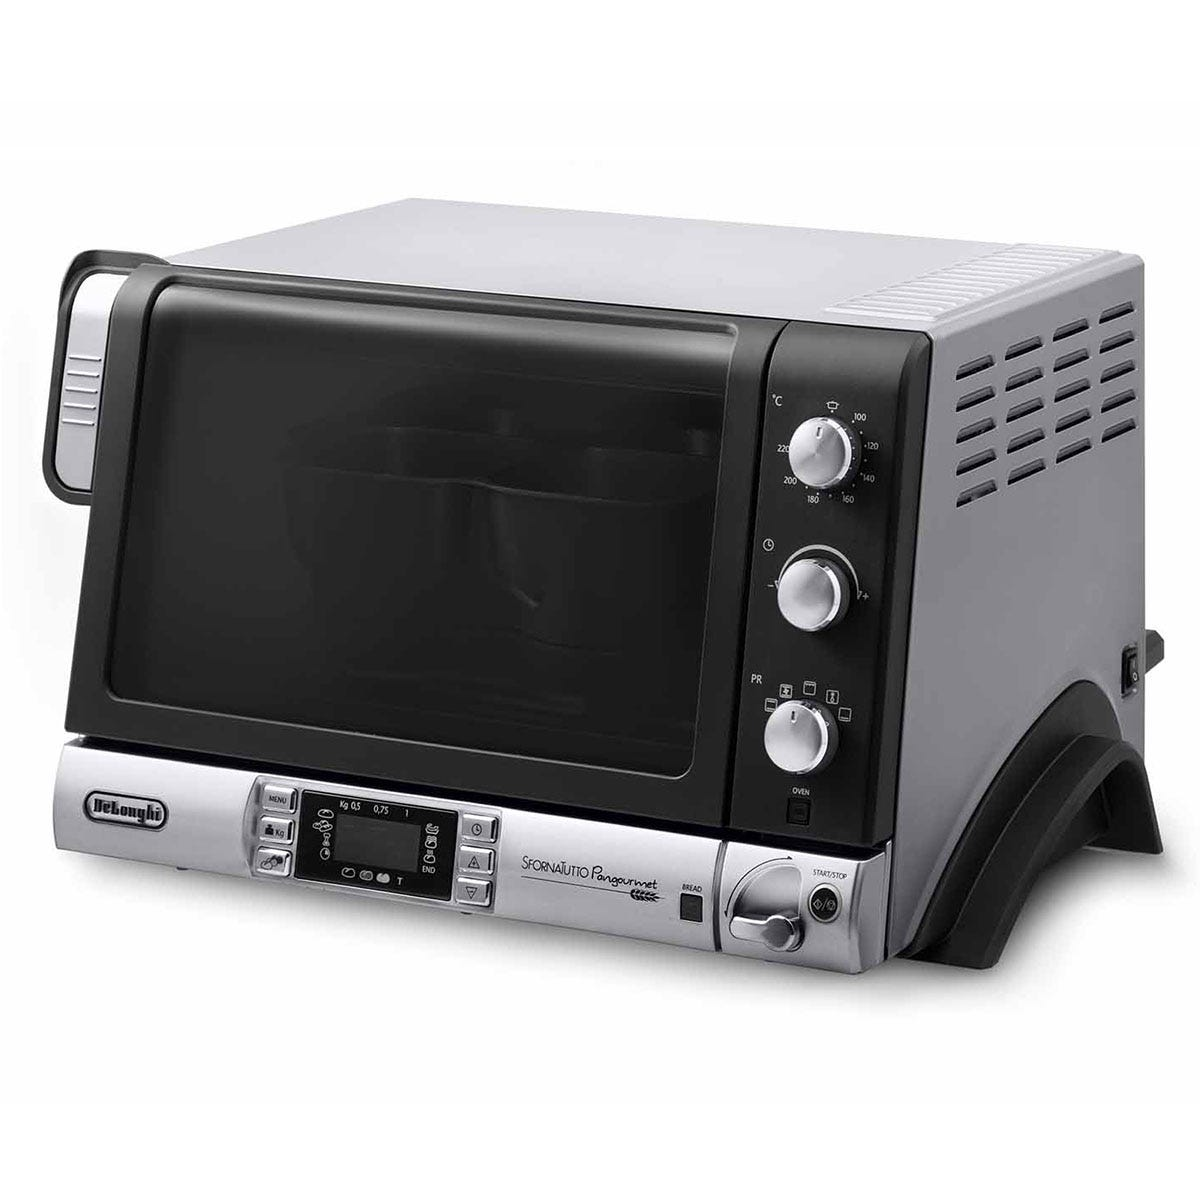 Image of DeLonghi EOB20712 Pangourmet Digital Electric Oven and Bread Maker 20L 1400W - Silver/Black